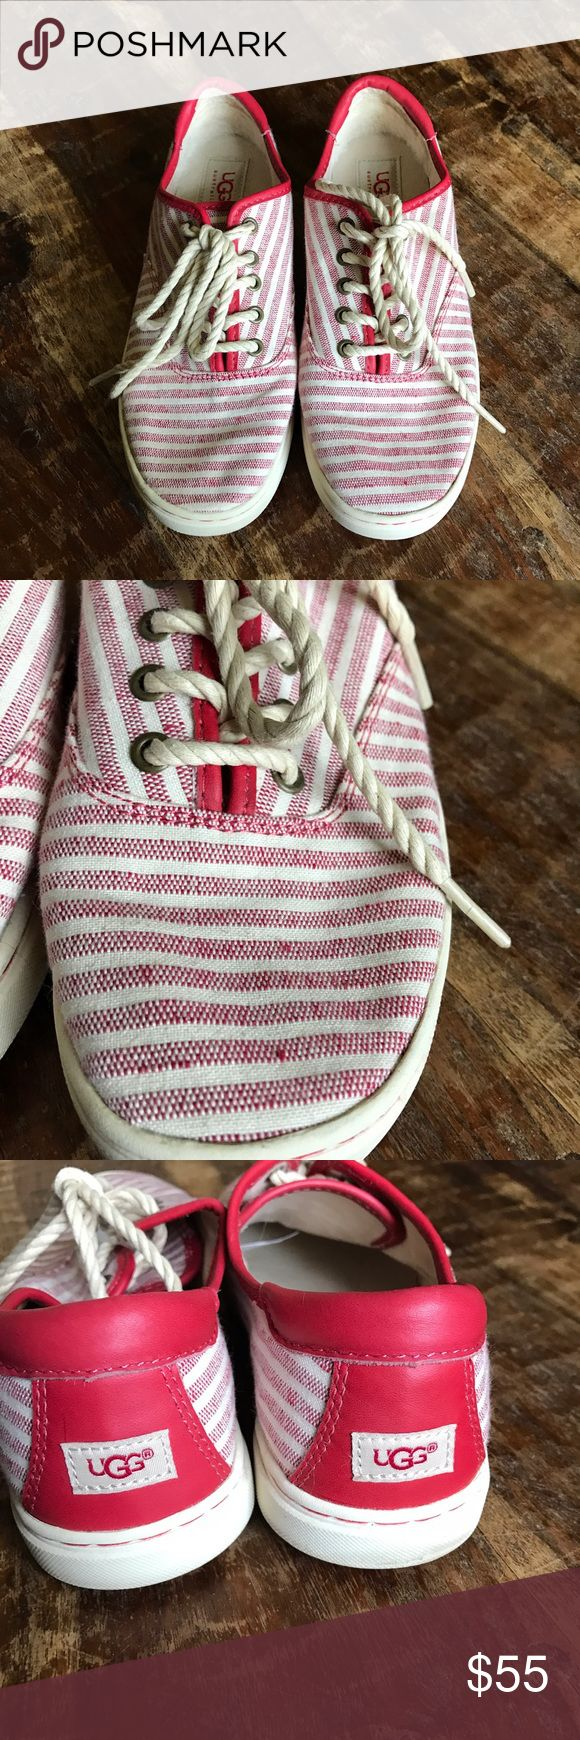 UGG Sneakers Super cute red striped shoes in excellent condition with no visible flaws. Super clean inside and out. UGG Shoes Sneakers